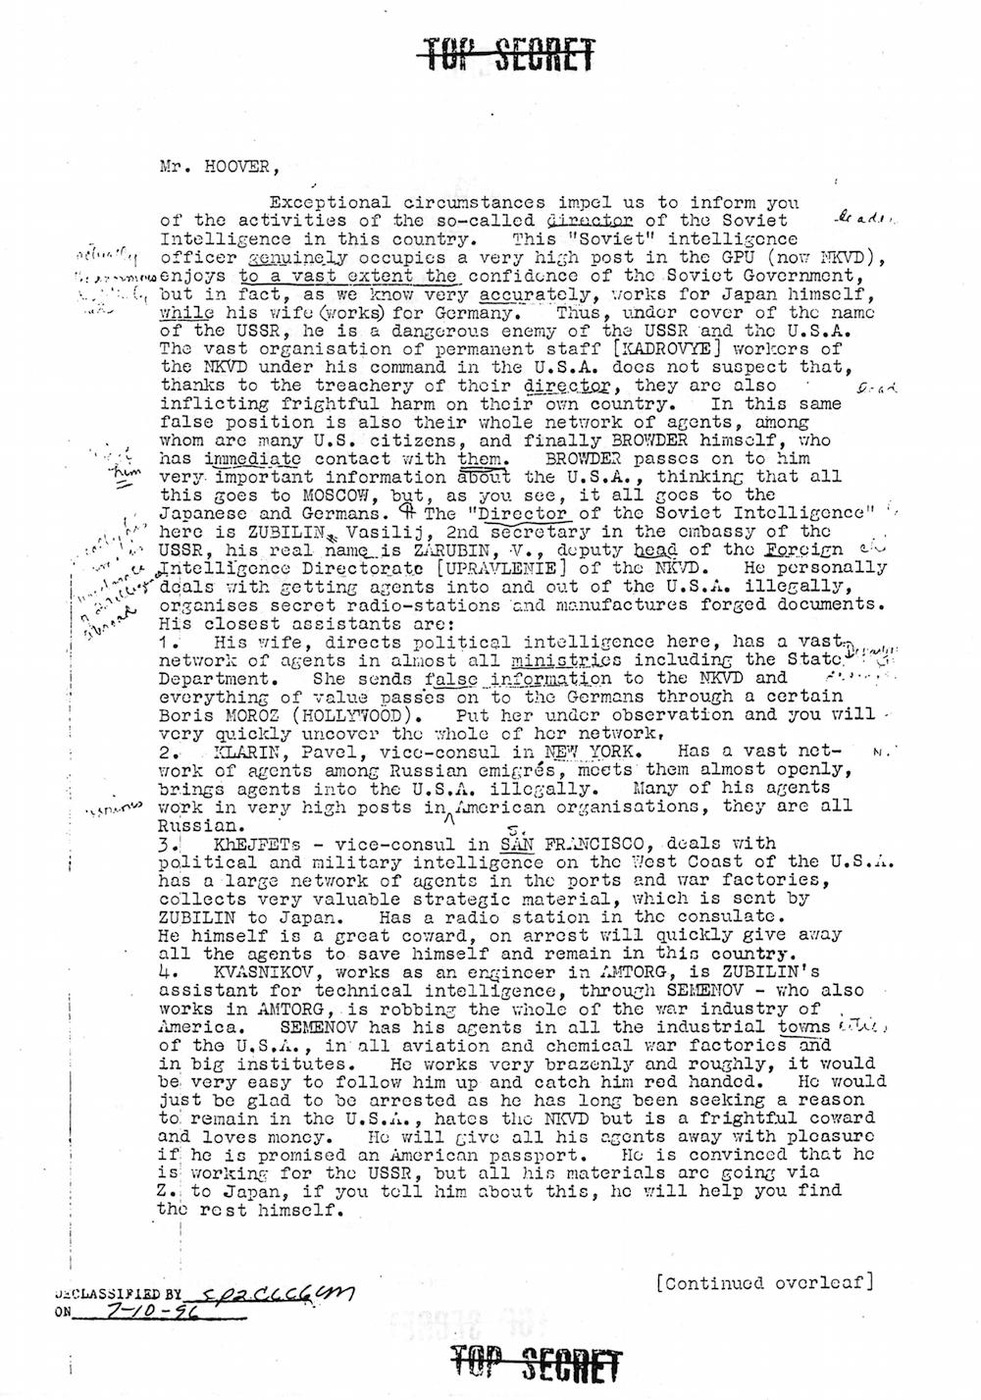 A copy of the mysterious letter that appeared at FBI Headquarters discussing Soviet espionage during World War II.